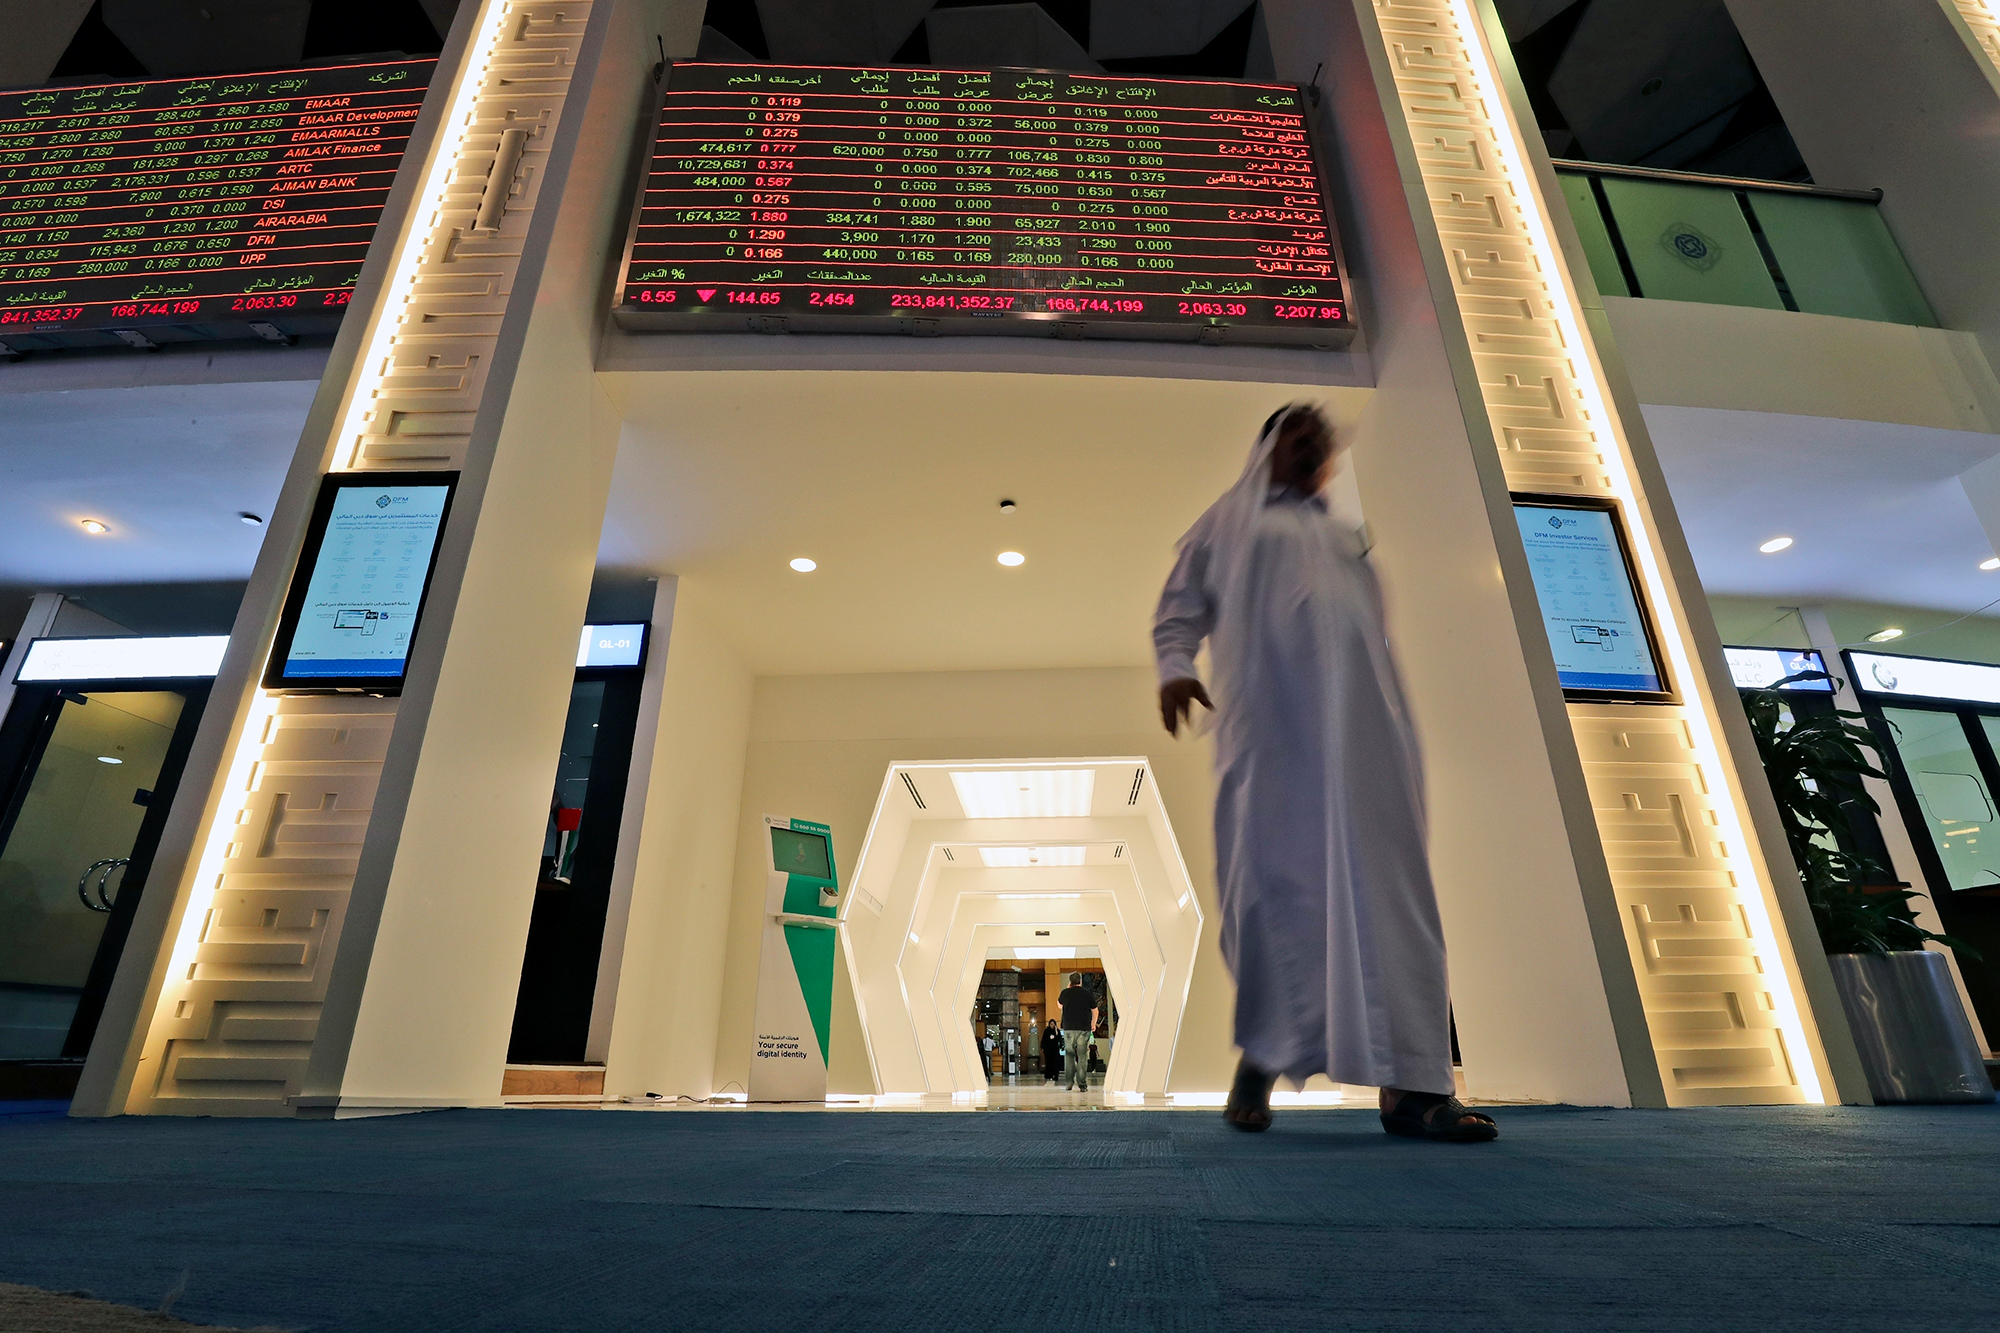 A trader arrives at the Dubai Financial Market in Dubai, United Arab Emirates, Thursday, March 12.